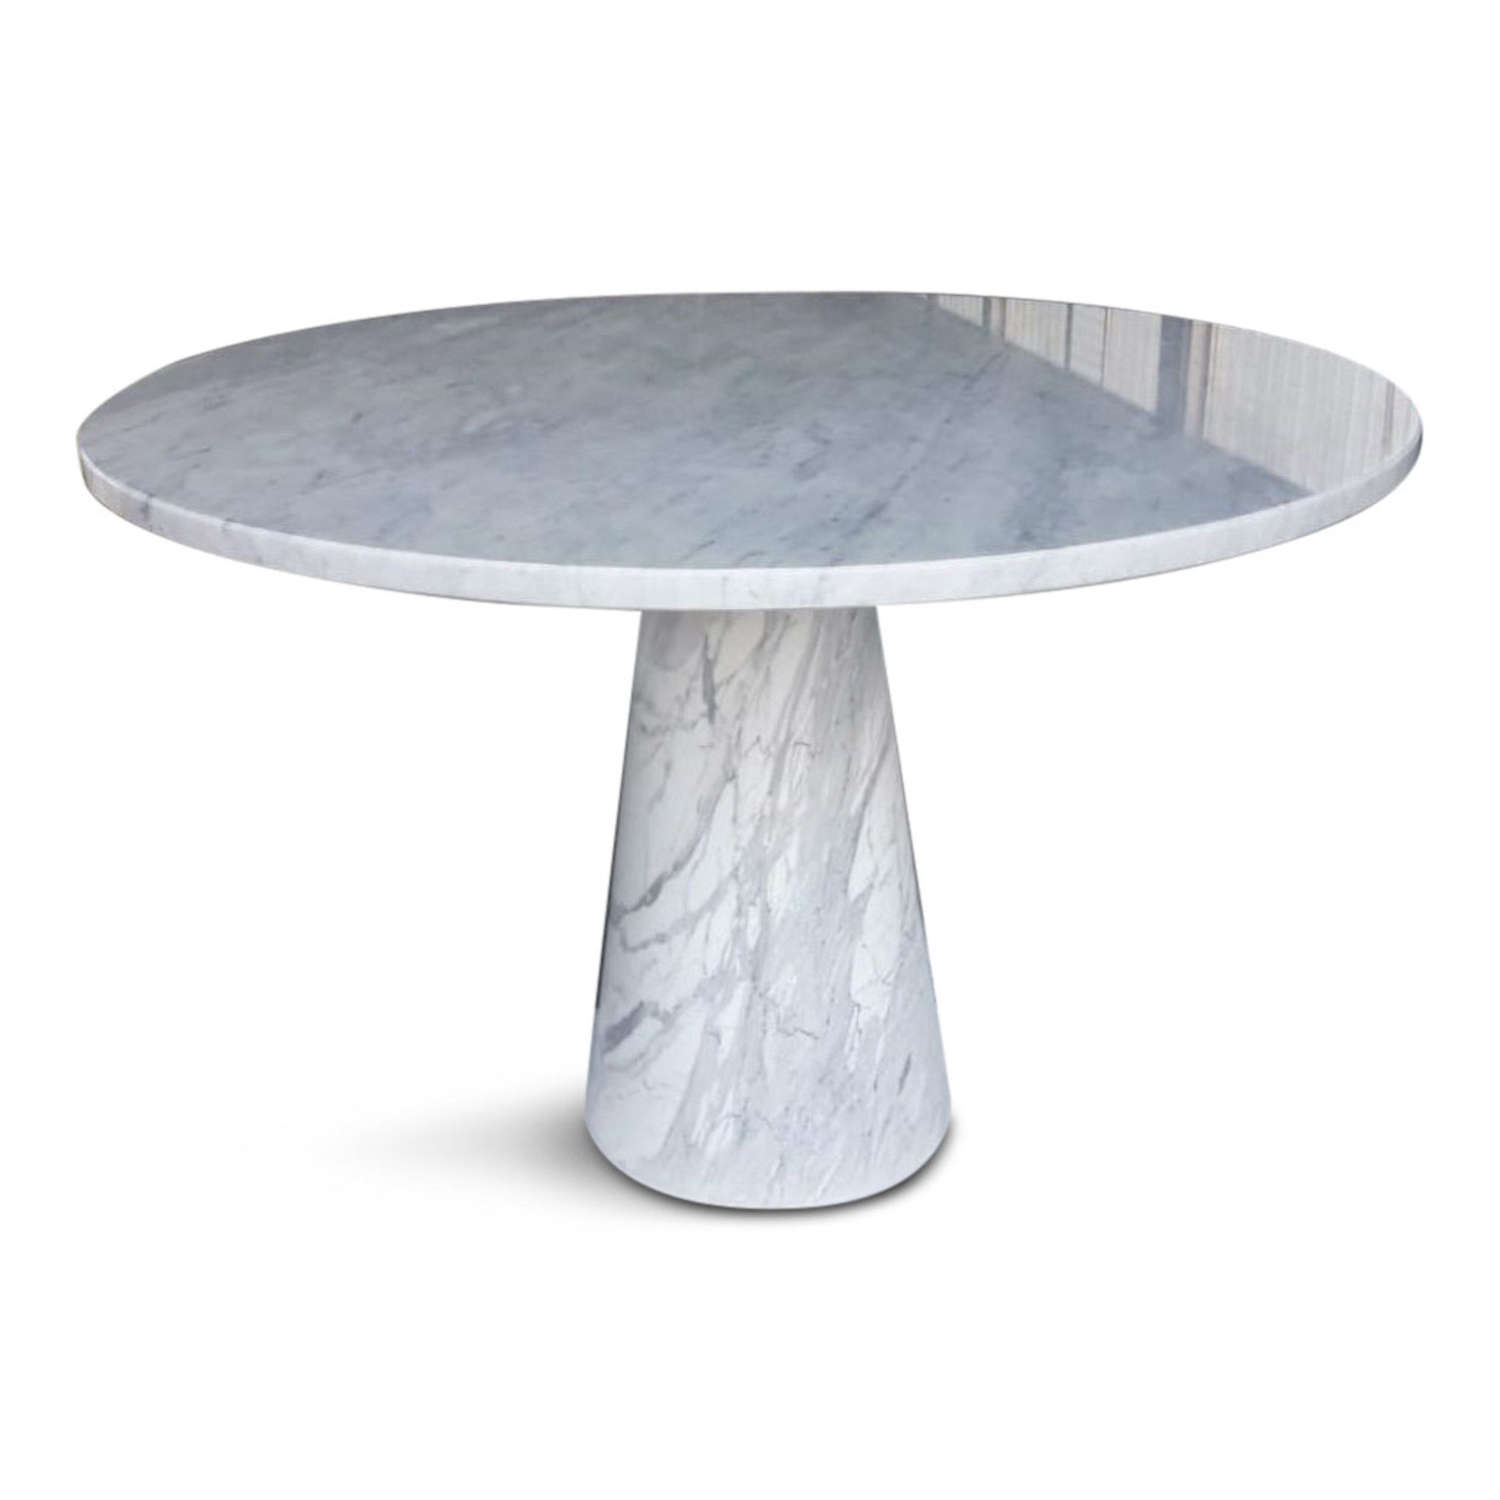 Made to Order Italian Dining Table in Carrara Marble